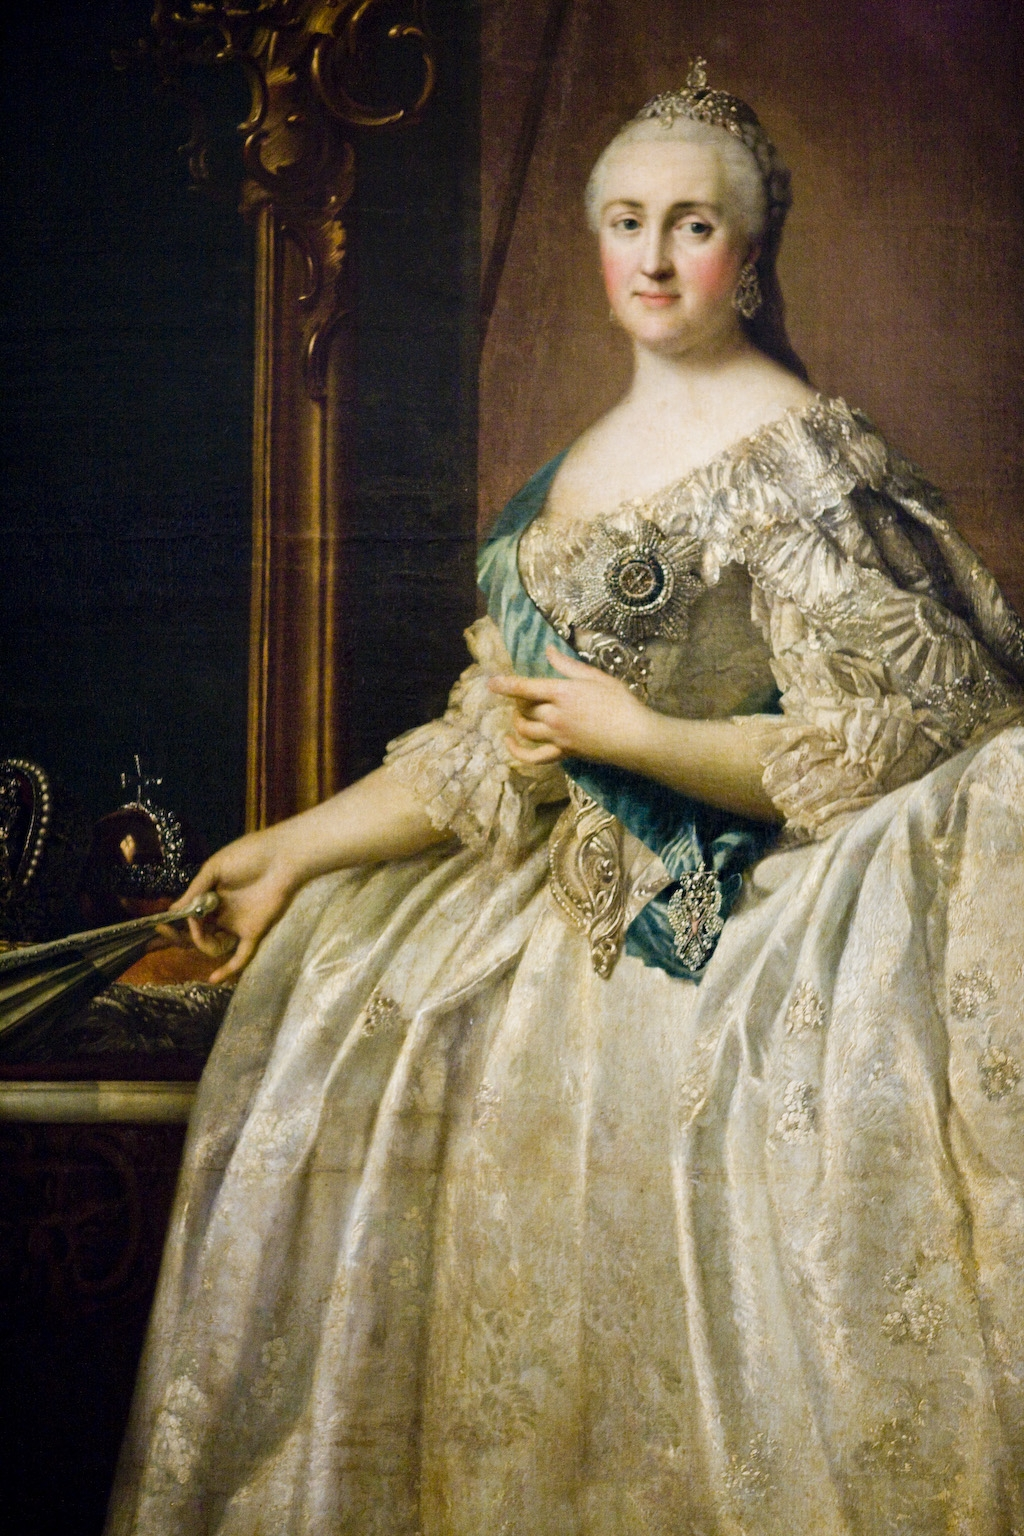 a biography of catherine the great empress of russia Catherine ii, also known as catherine the great, was an empress of russia who ruled from 1762-1796, the longest reign of any female russian leader.